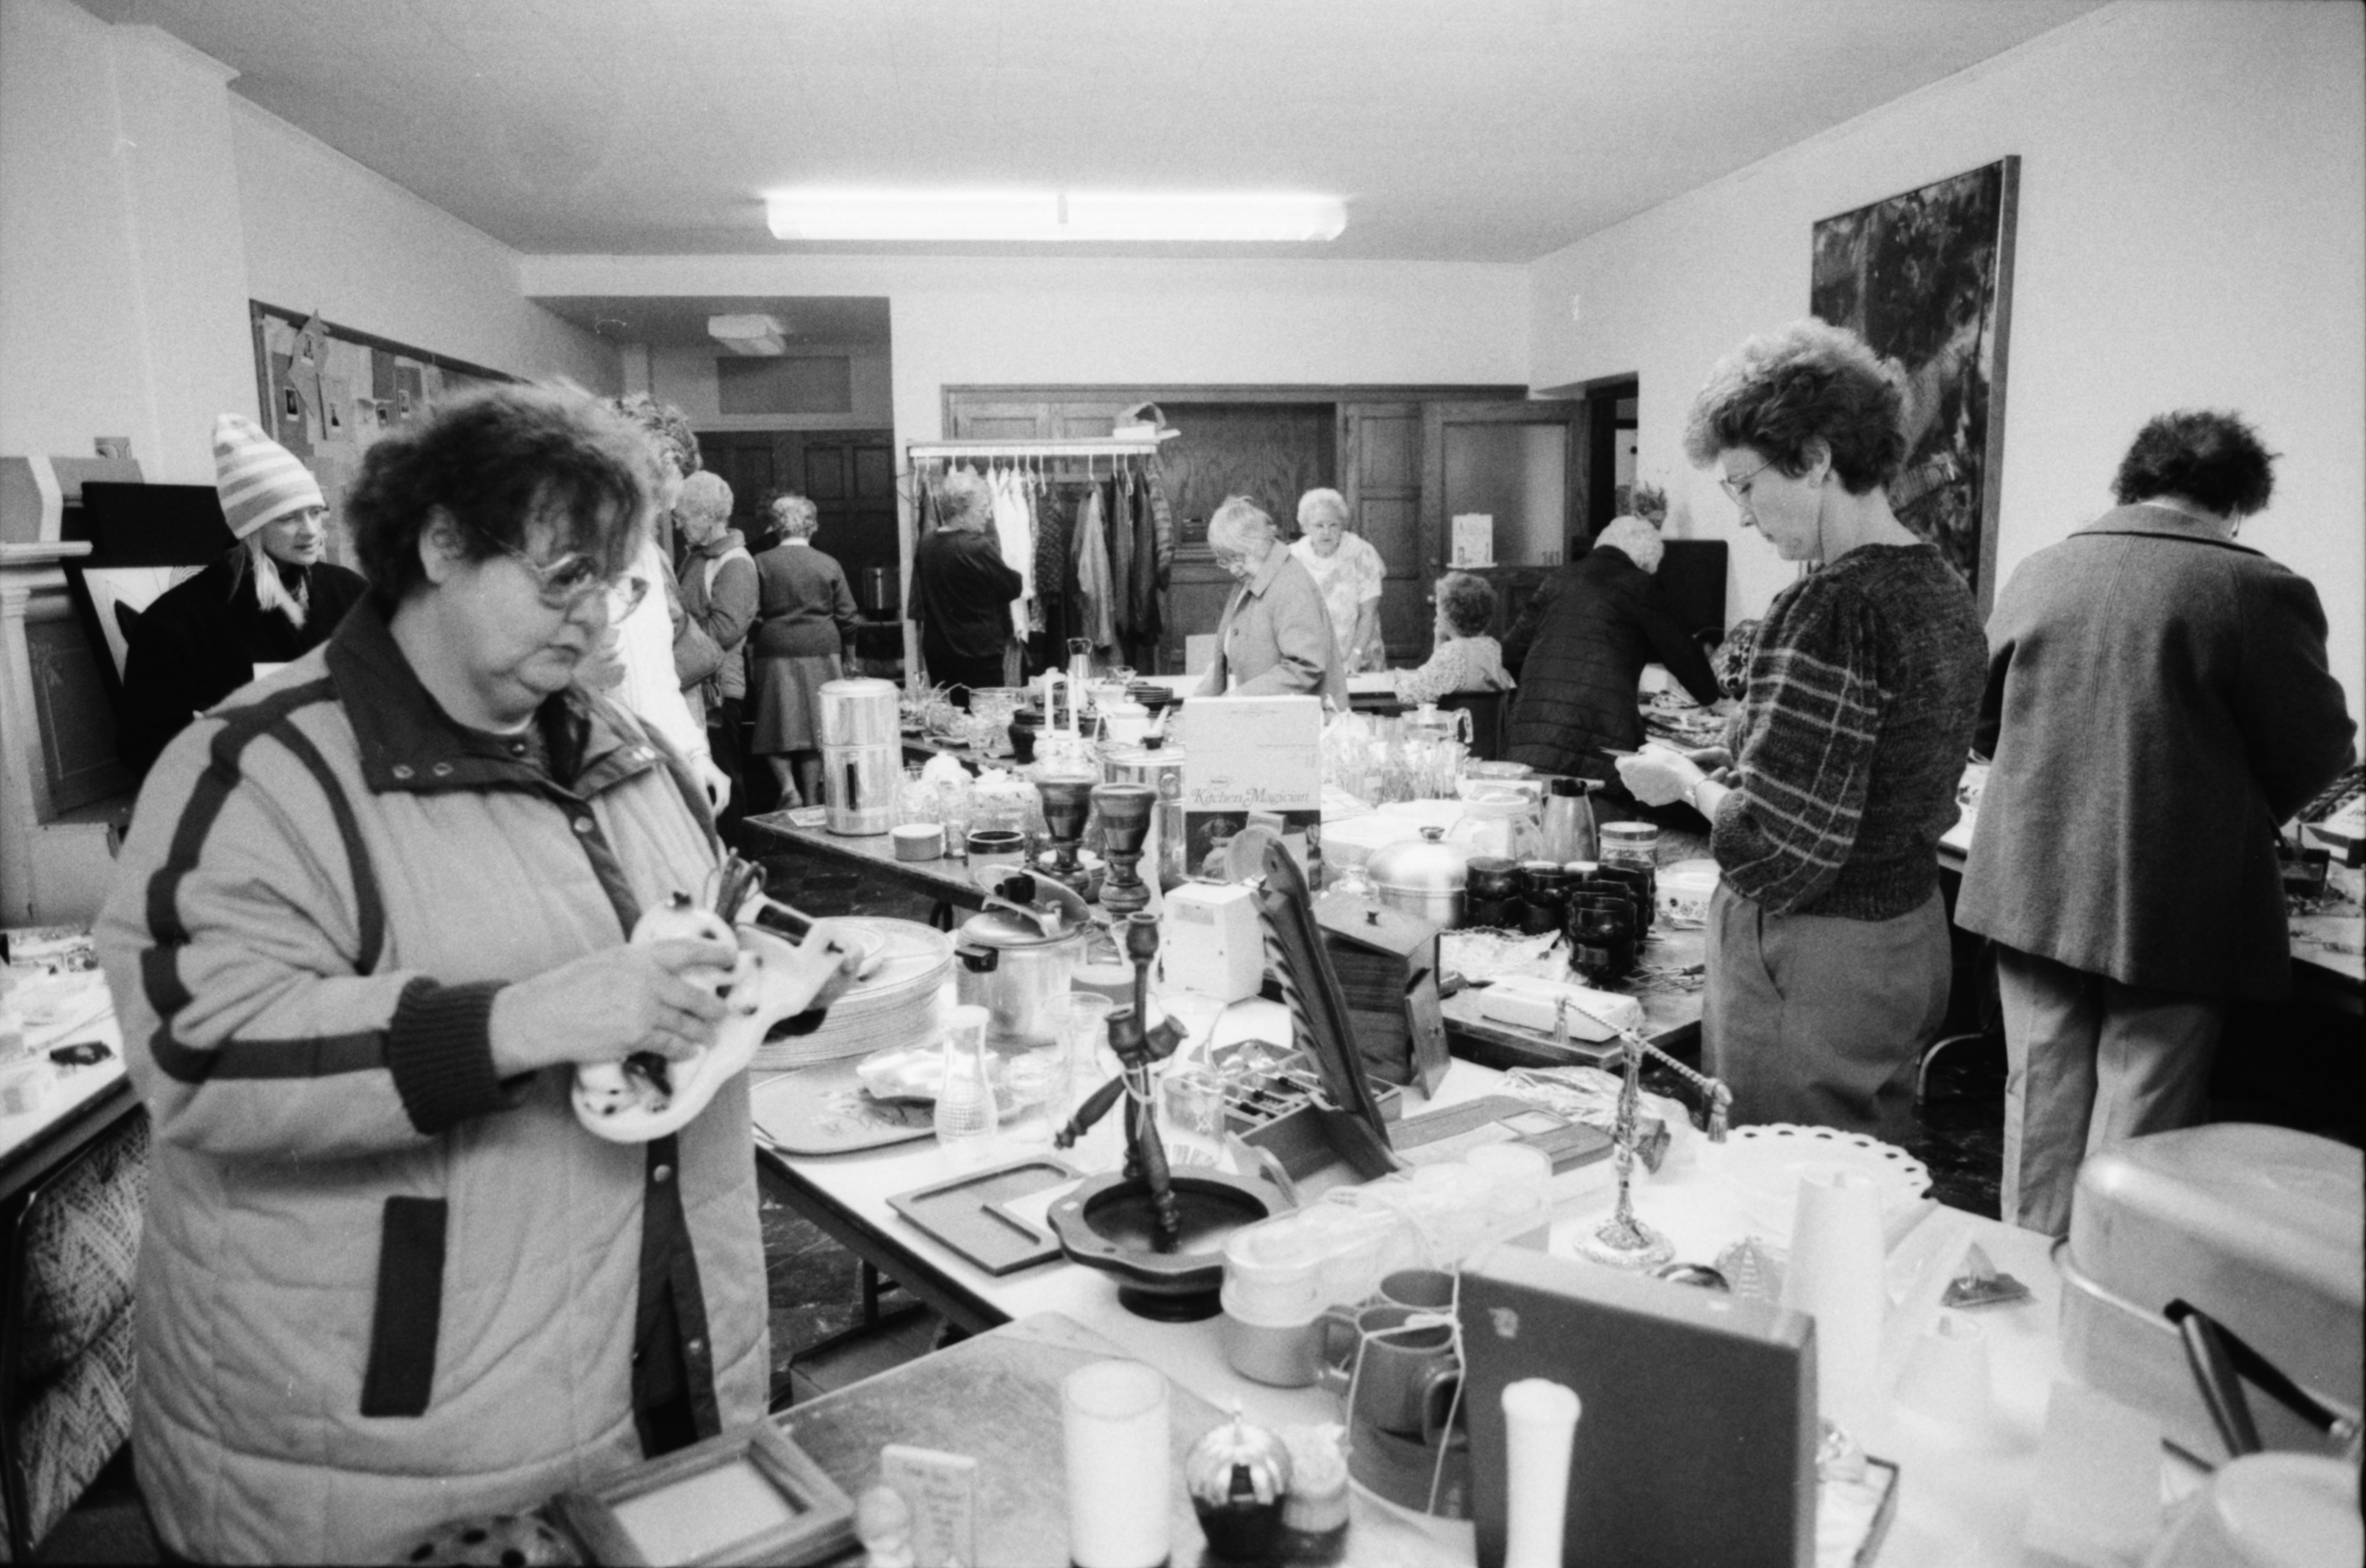 Attic Sale to Benefit House by the Side of the Road, October 1988 image